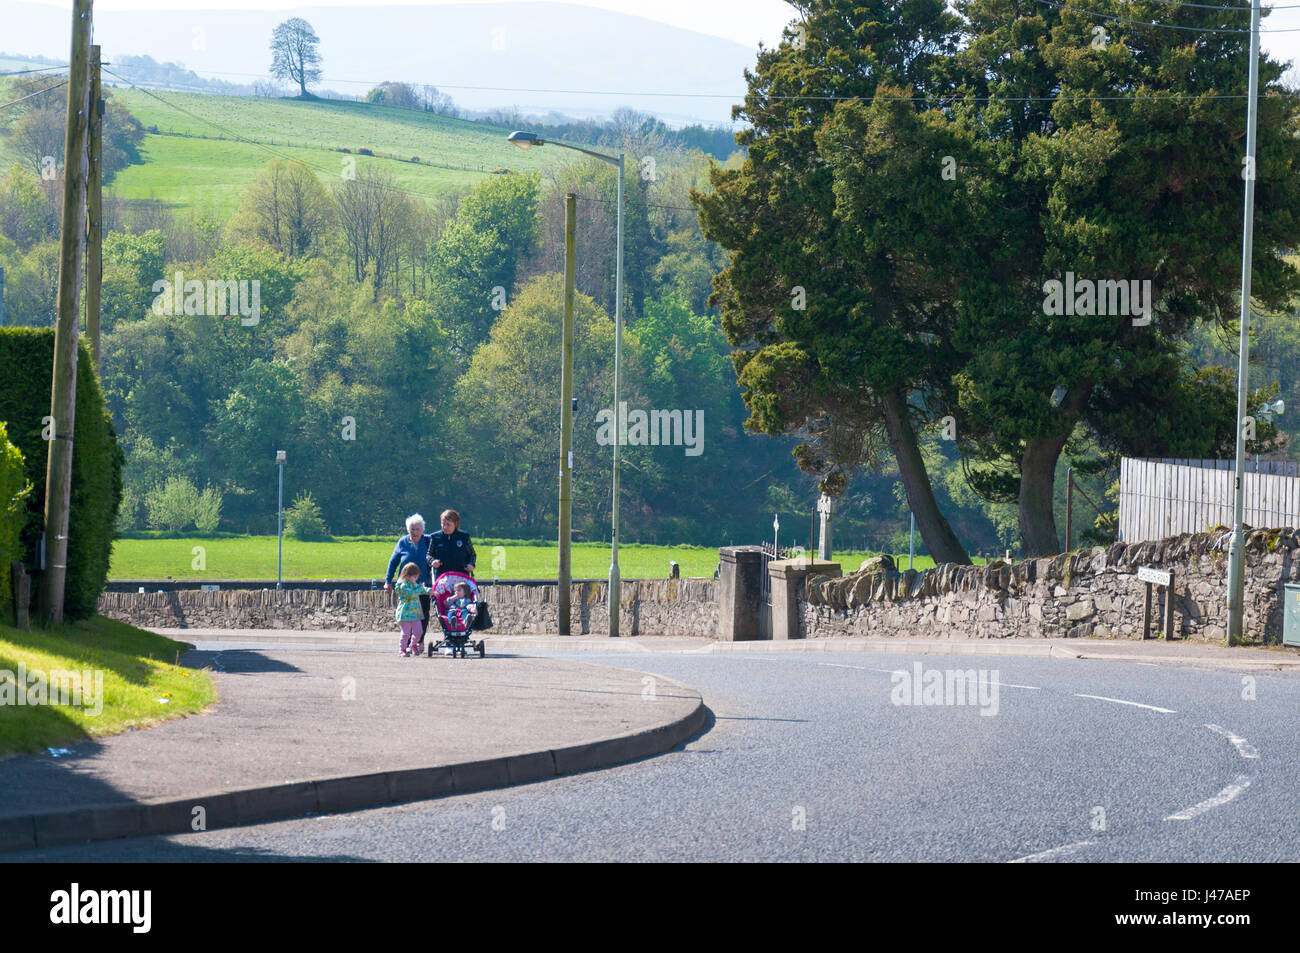 Claudy bombing, Main Street, County Londonderry, Northern Ireland. People walking with children and buggy pushchair - Stock Image